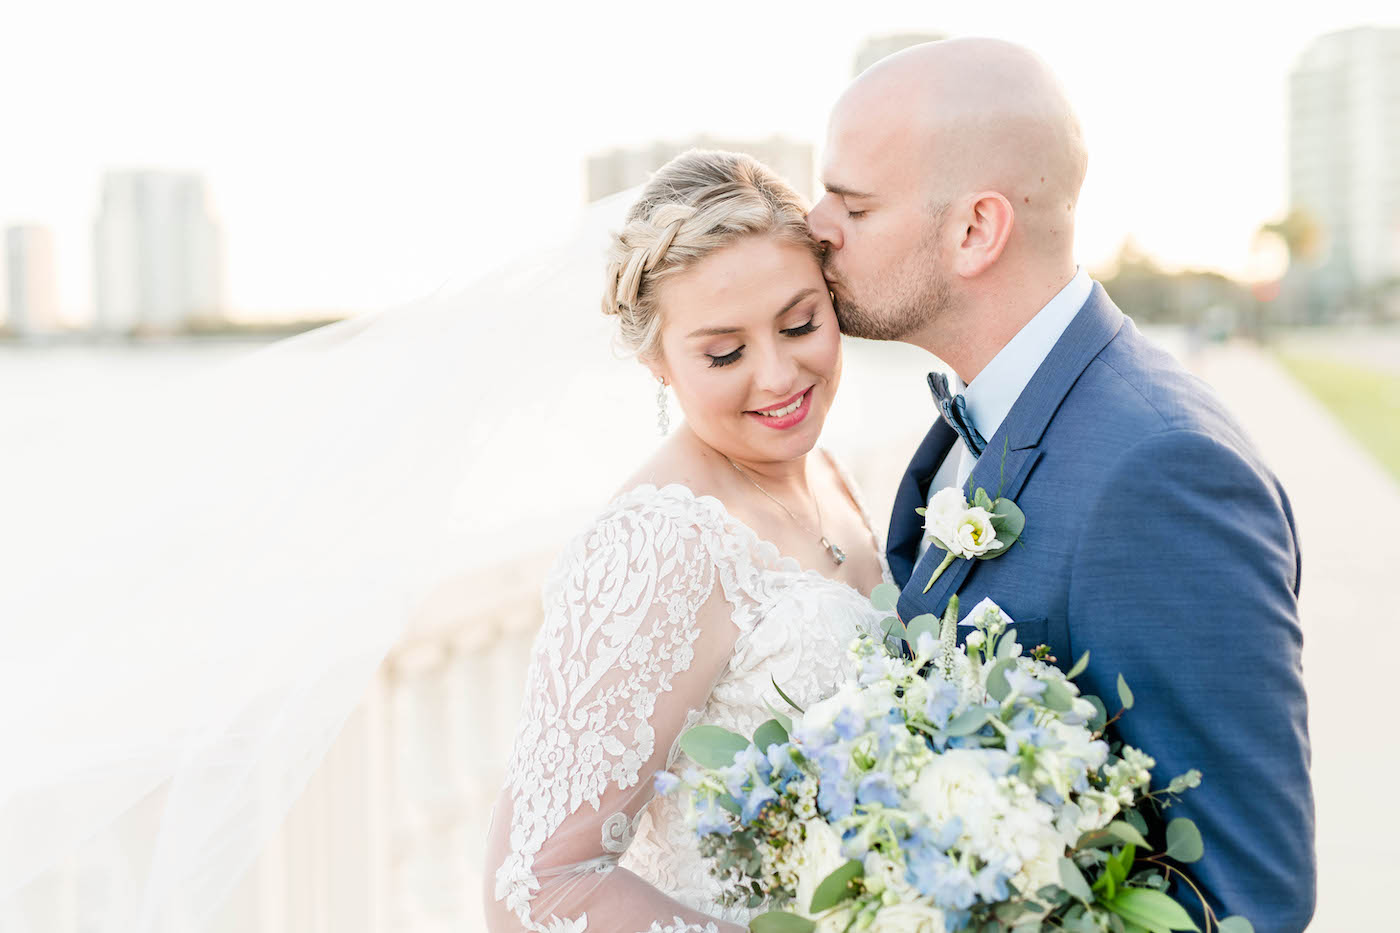 Bride and Groom Outdoor Portraits with Veil Shot   Ivory Lace Long Sleeve V Neck Bridal Gown and Groom in Blue Suit with Bow Tie   Blue and White Bridal Bouquet   Femme Akoi Beauty Studio